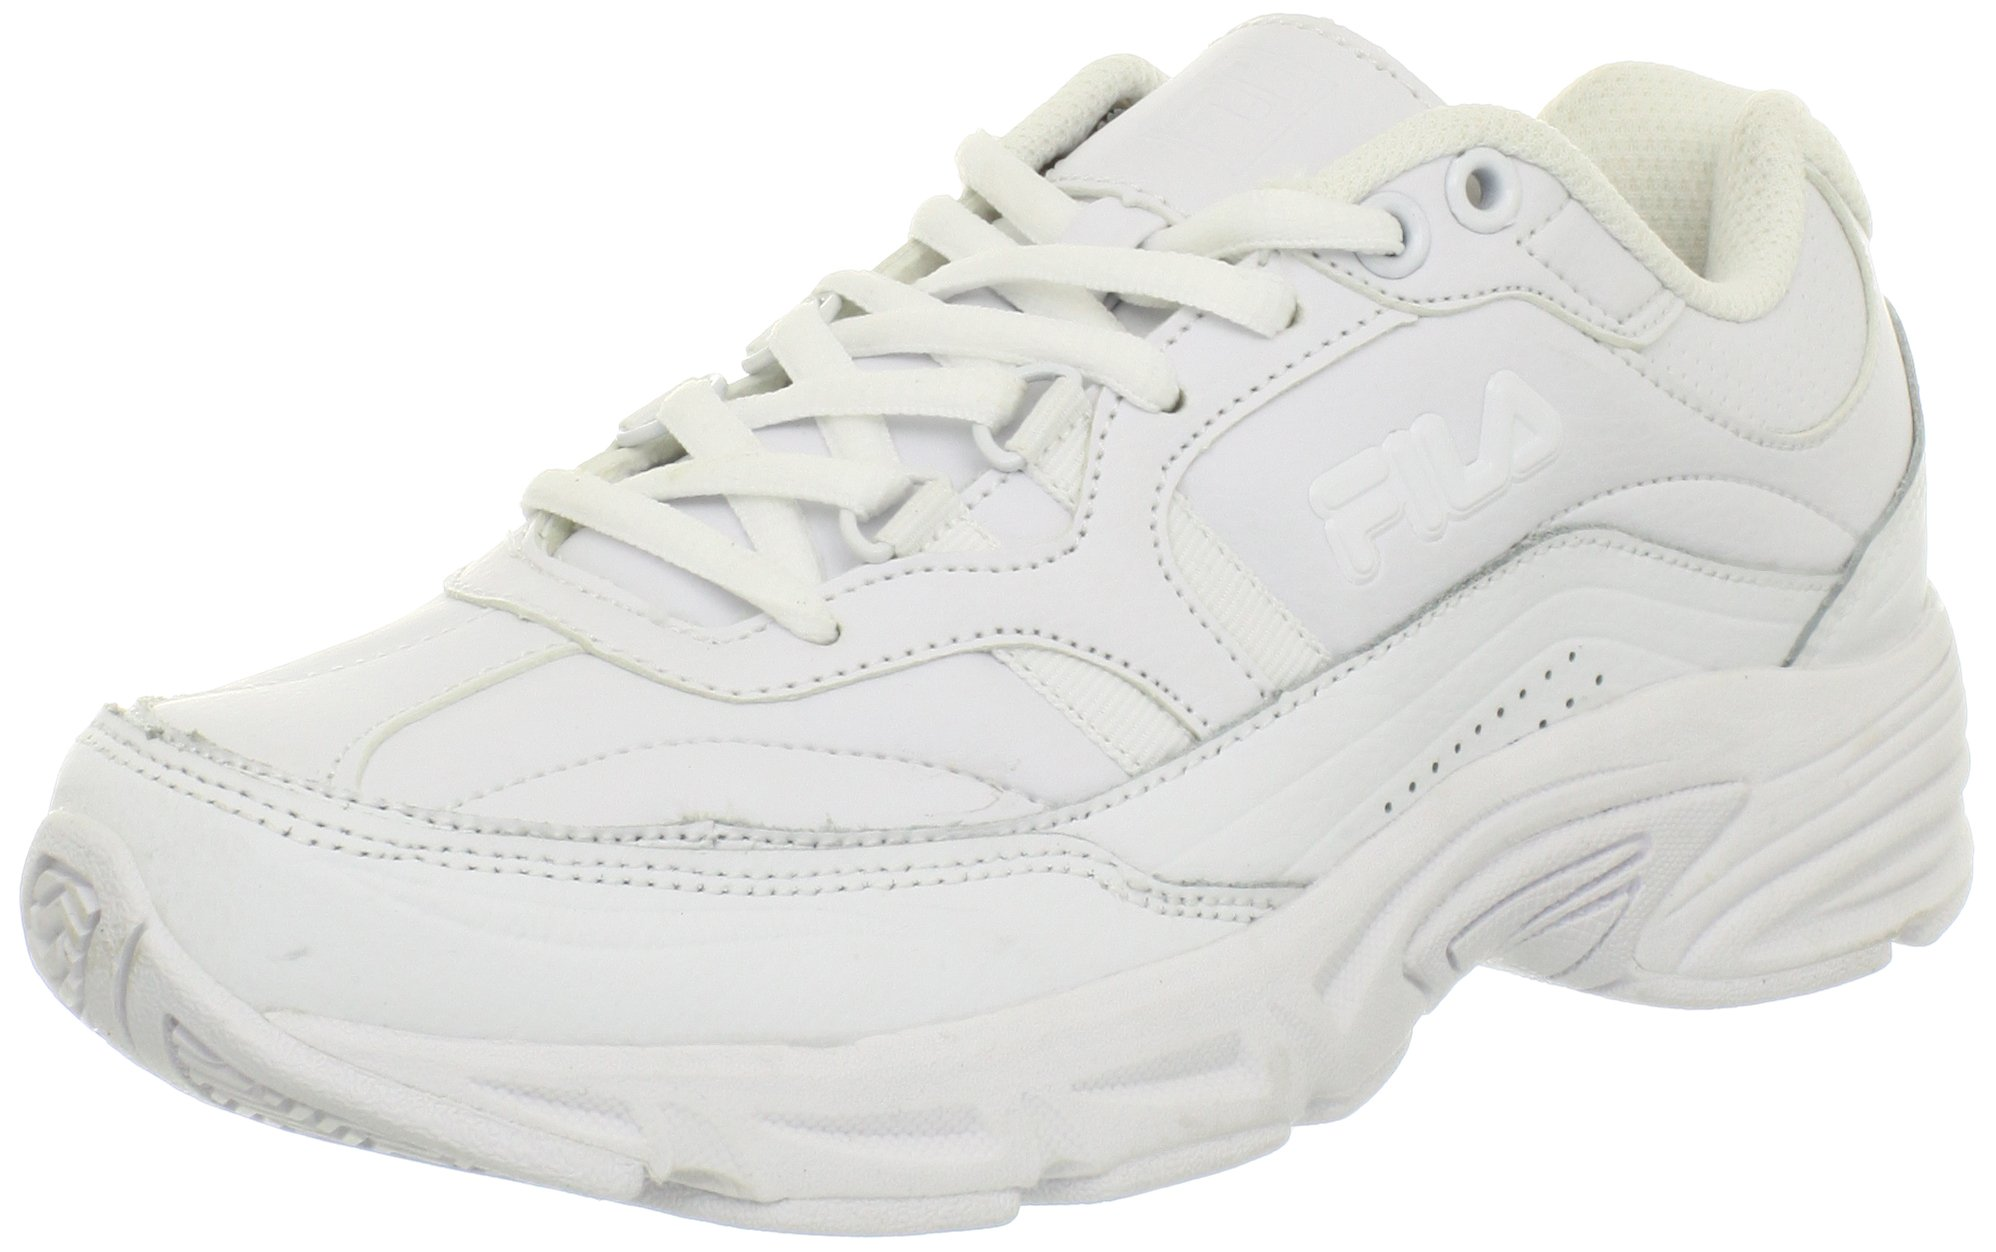 Fila Women's Memory Workshift Cross-Training Shoe,White/White/White,7.5 M US by Fila